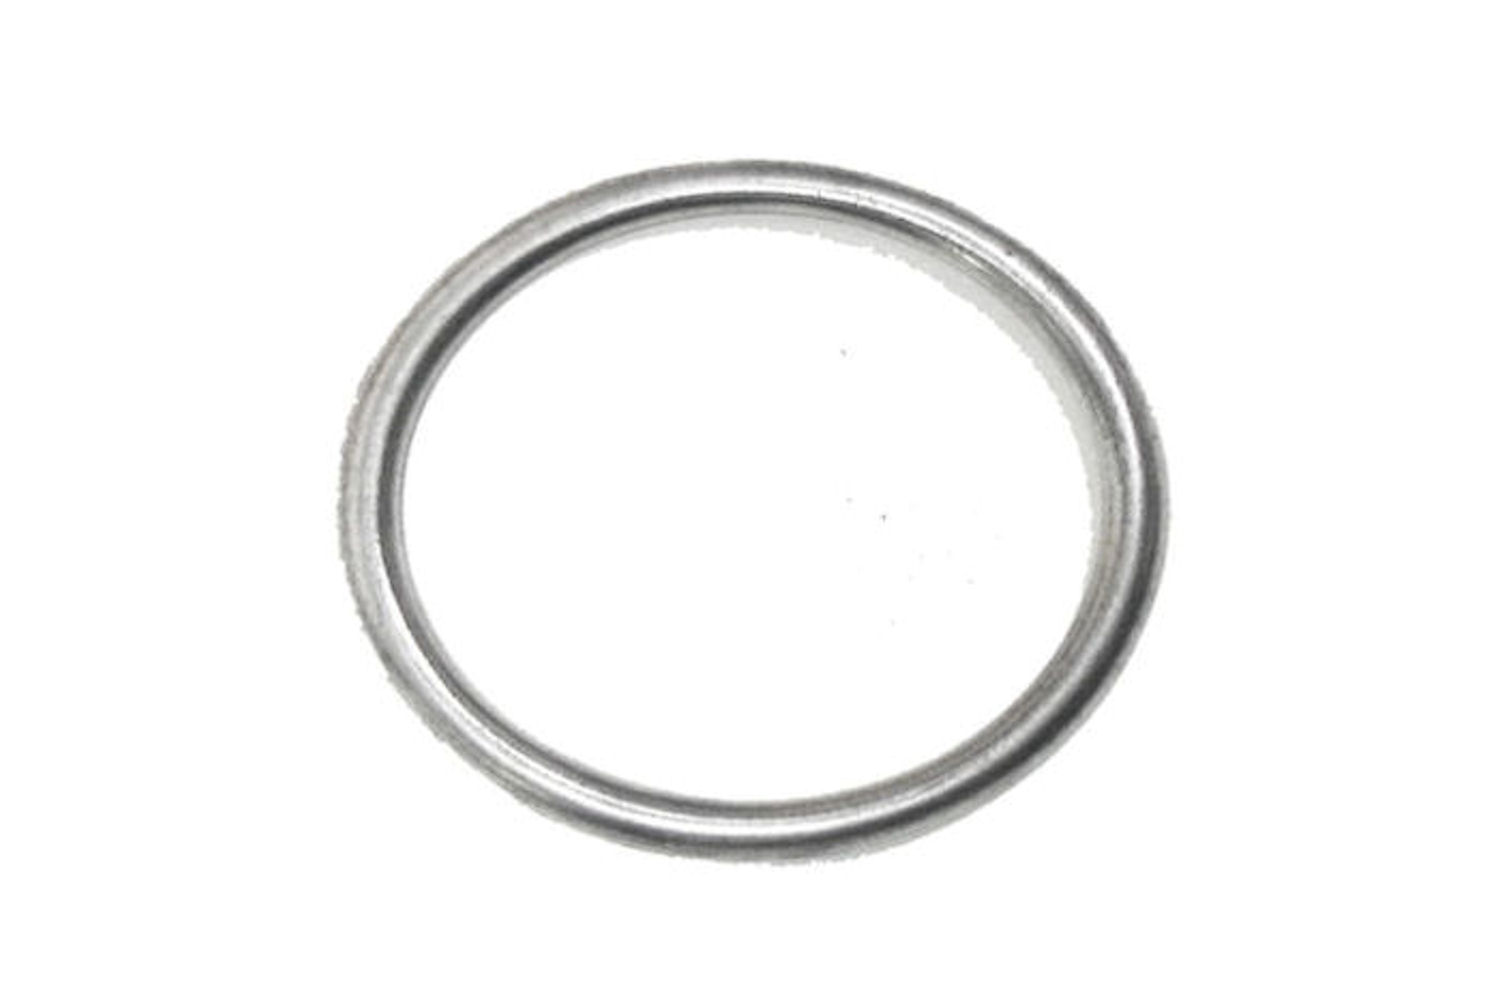 hight resolution of 1999 chevrolet metro exhaust pipe flange gasket bo 256 215